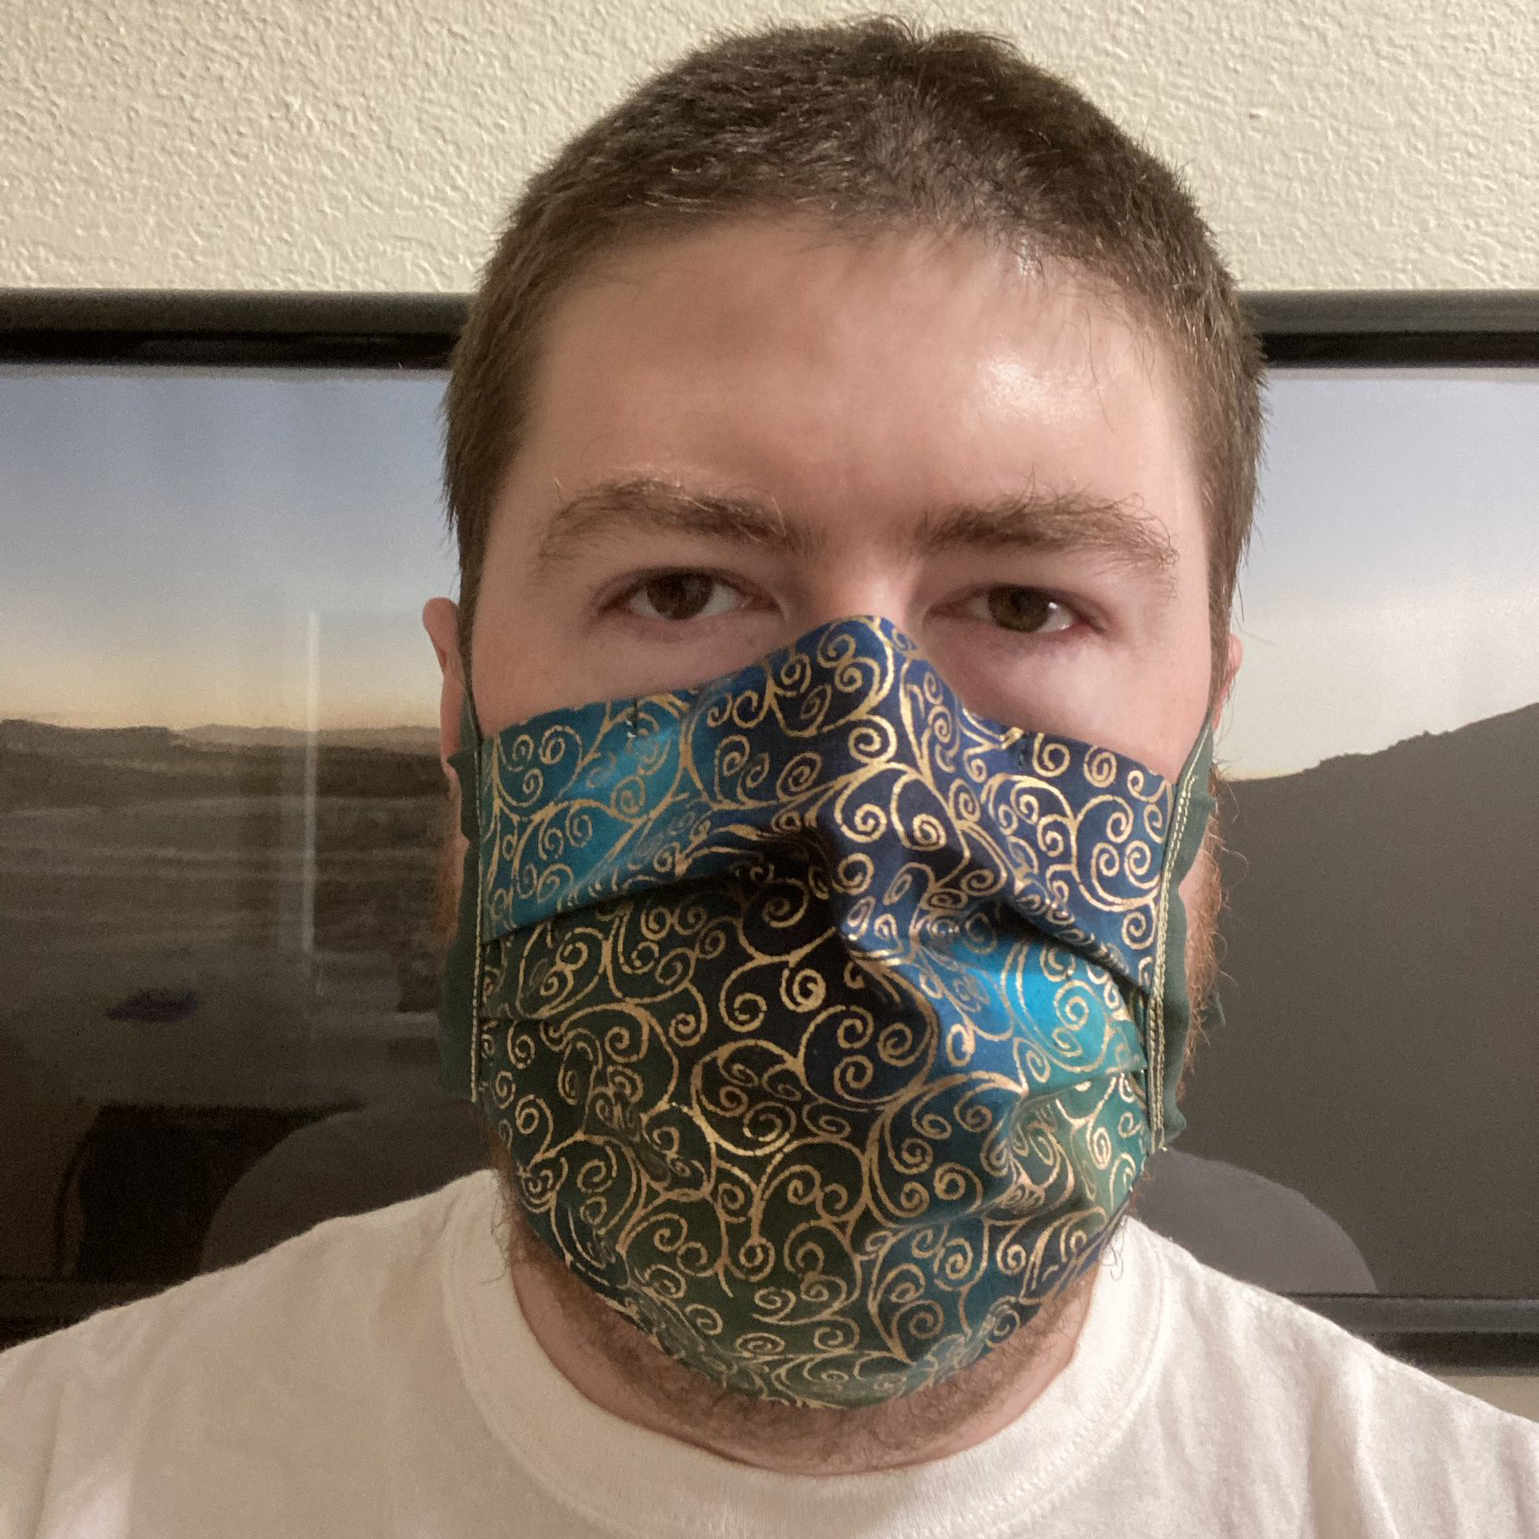 Me wearing a mask with a gold-colored scrolls pattern printed on a blue-and-green batik fabric.